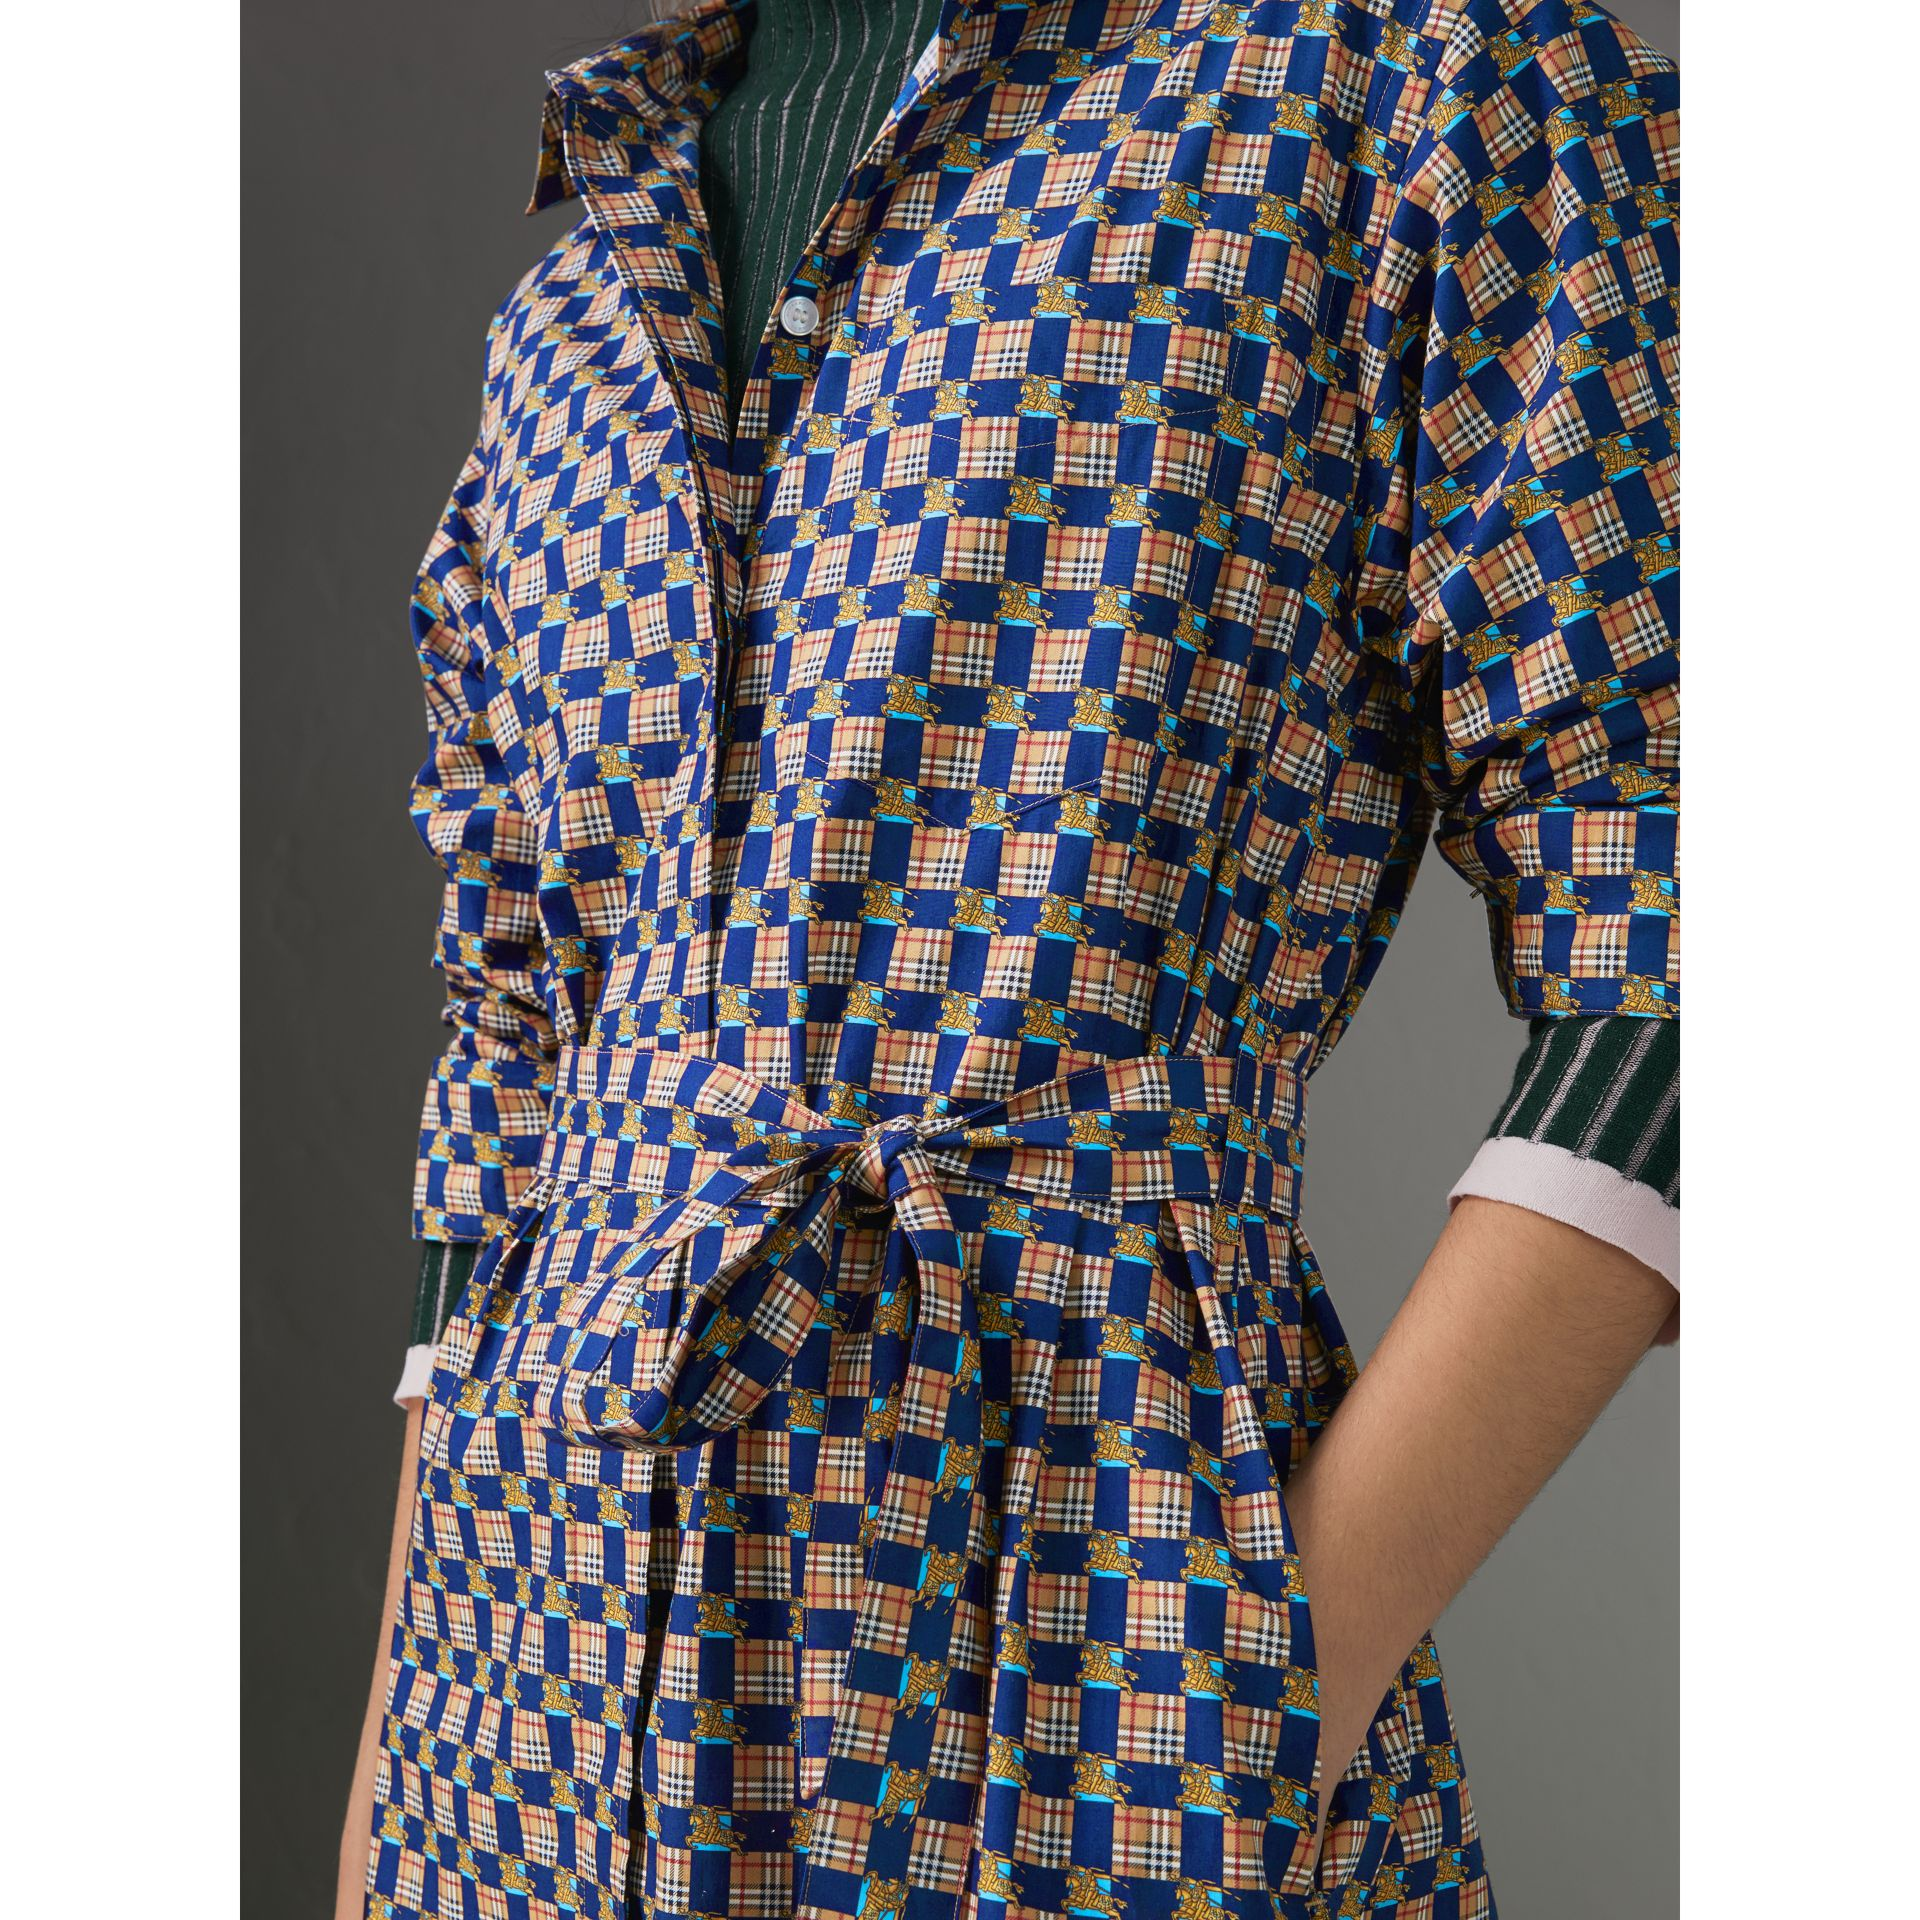 Tiled Archive Print Cotton Shirt Dress in Navy - Women | Burberry United Kingdom - gallery image 1